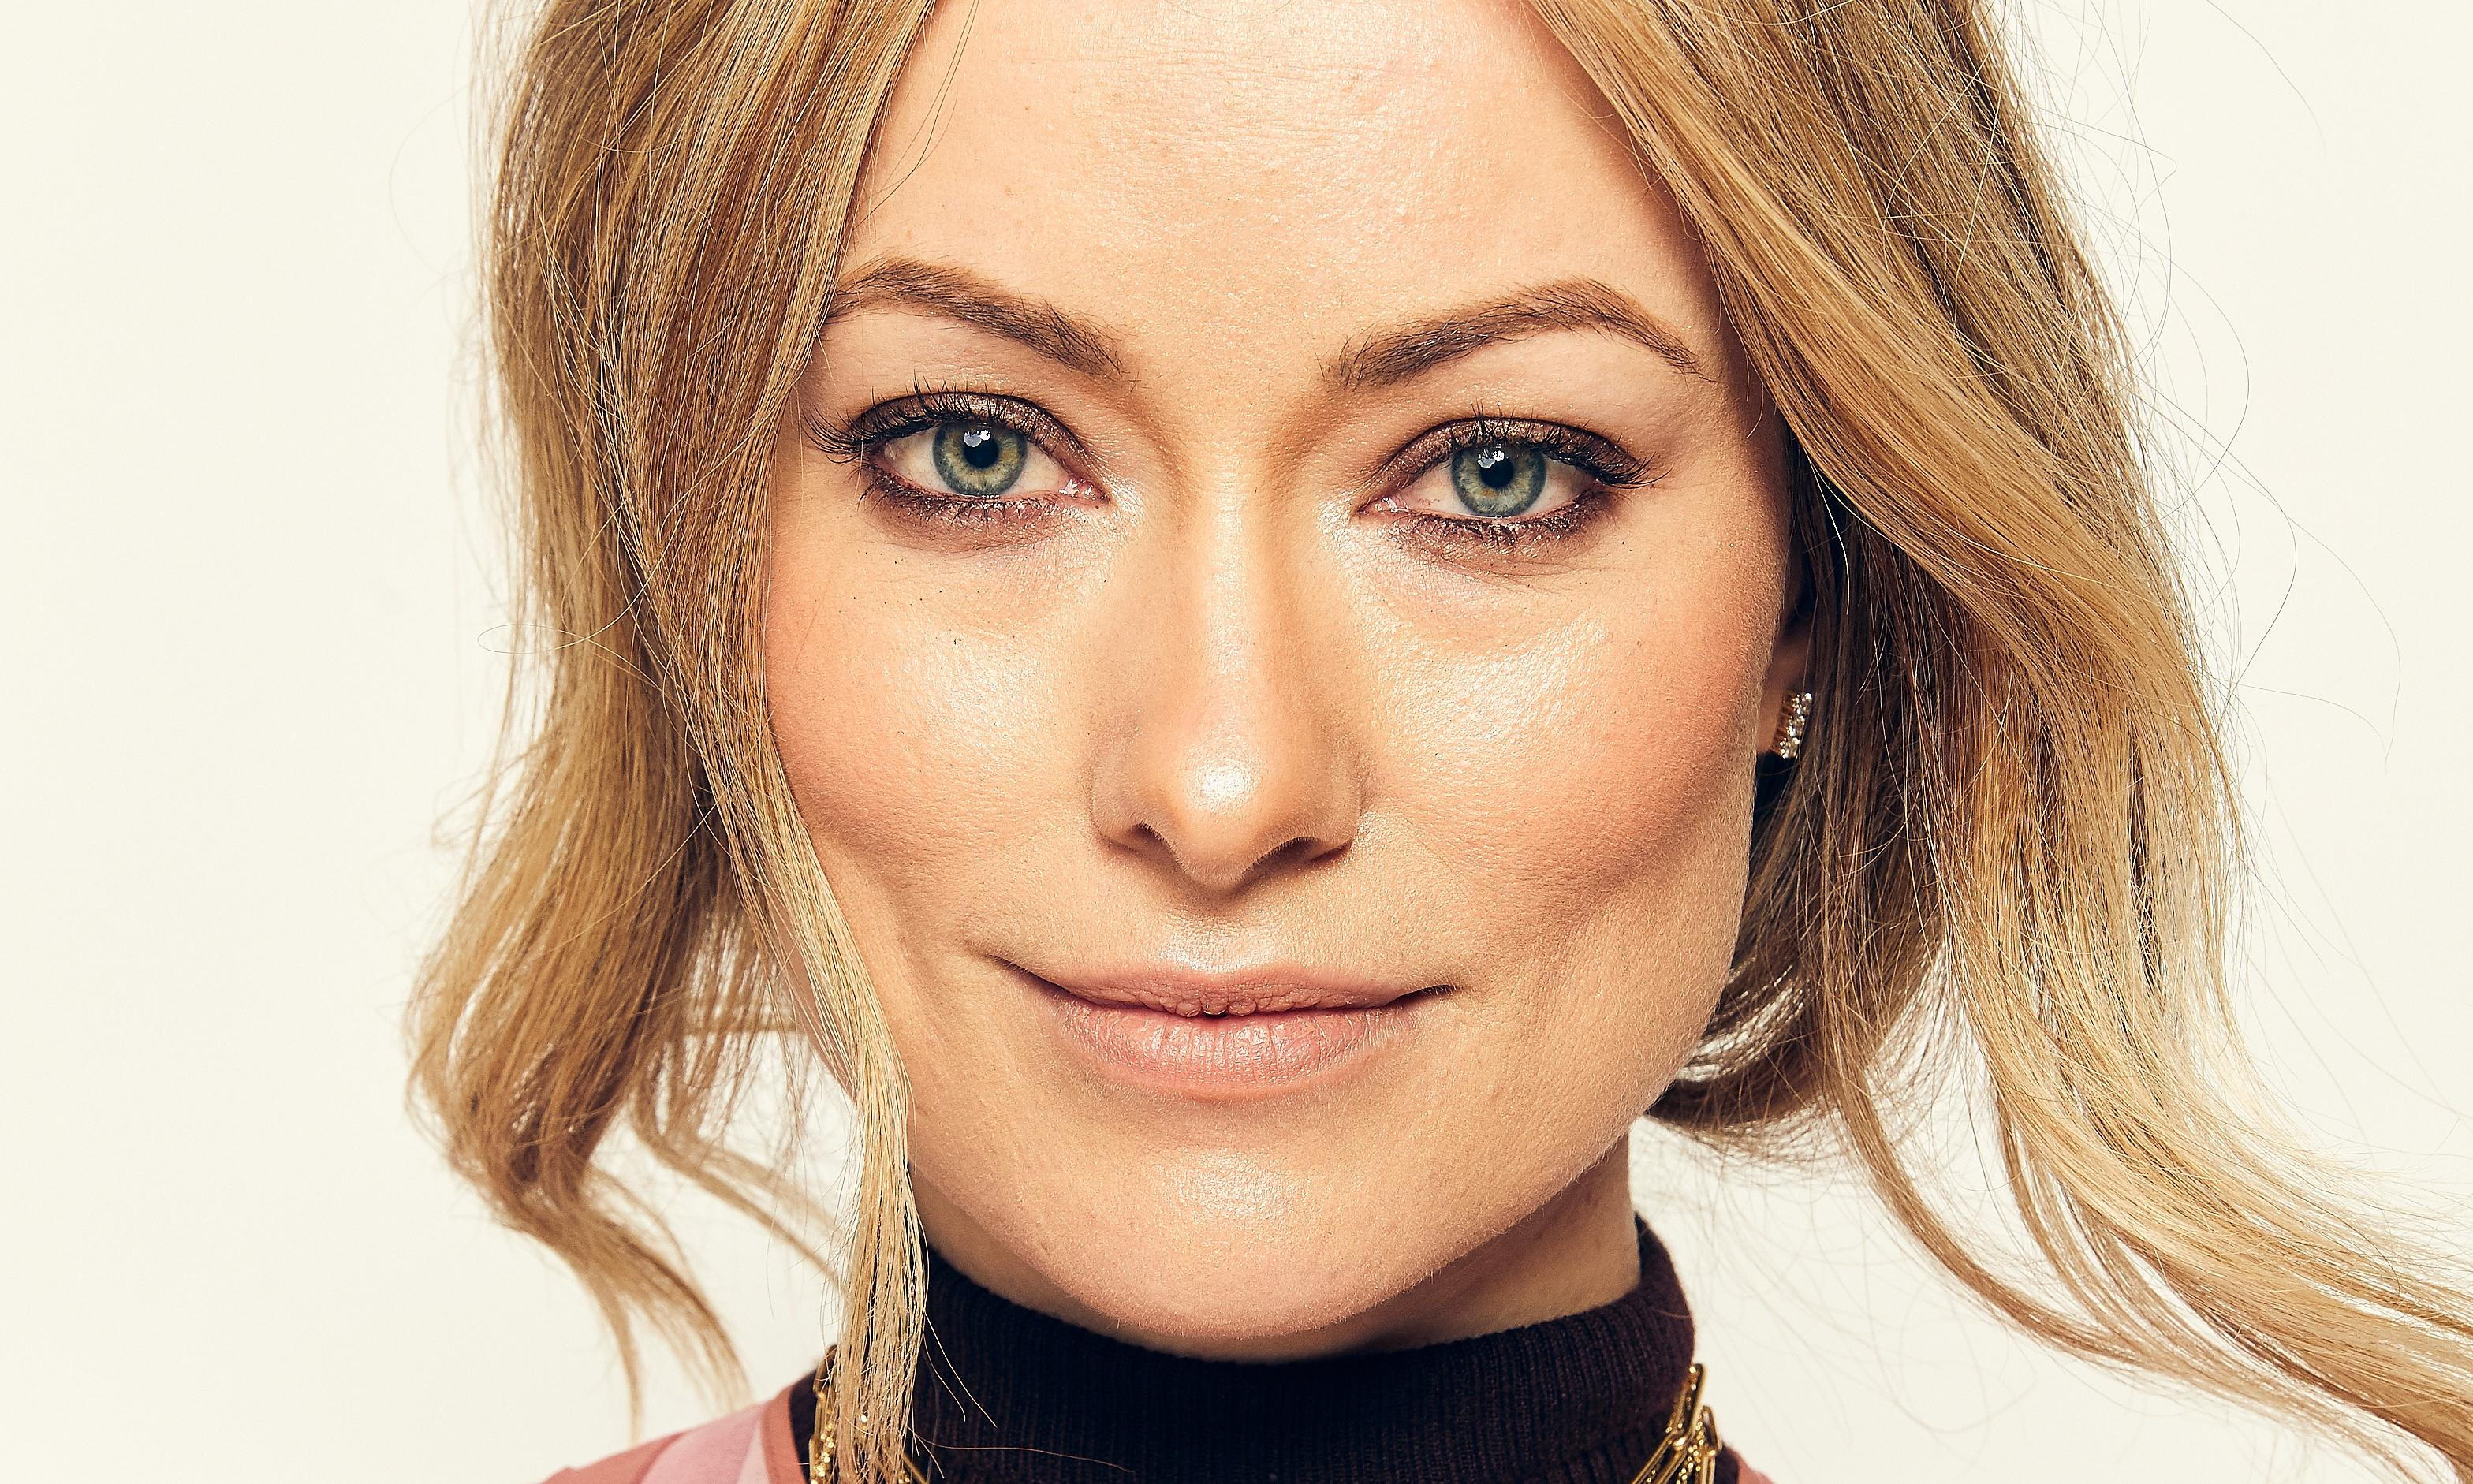 Booksmart director Olivia Wilde: 'Being young is the most painful, most hilarious experience'